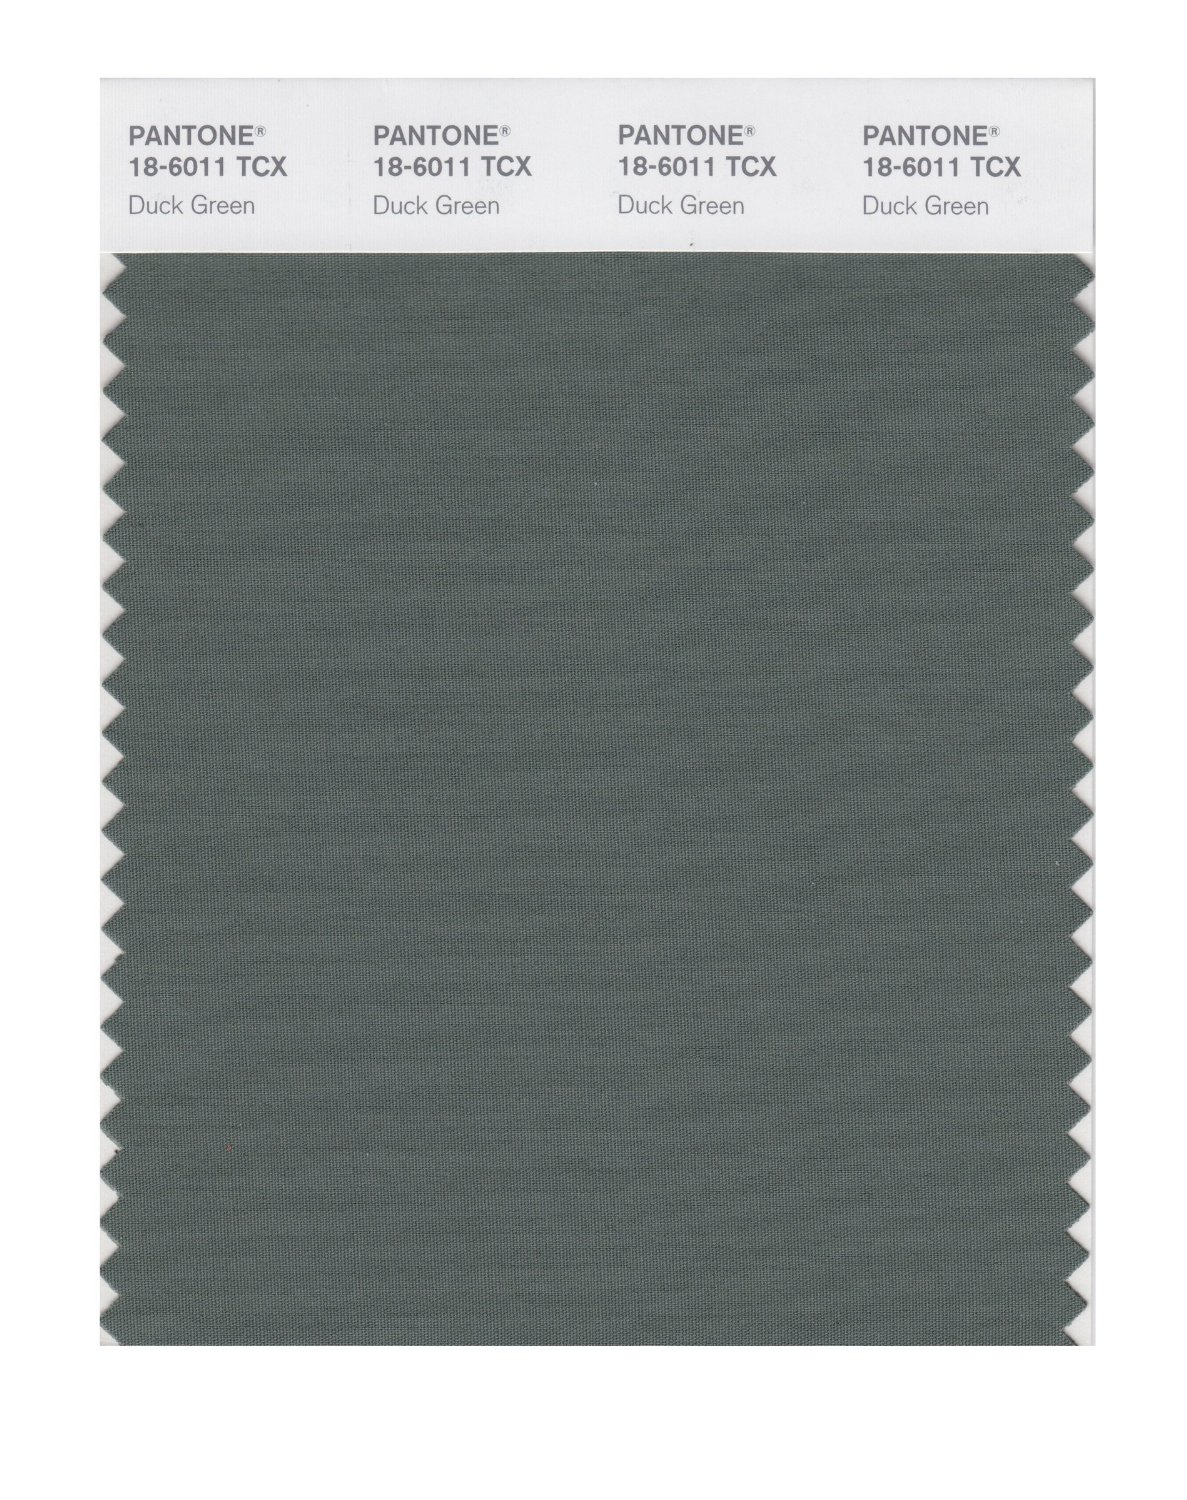 Pantone Smart Swatch 18-6011 Duck Green